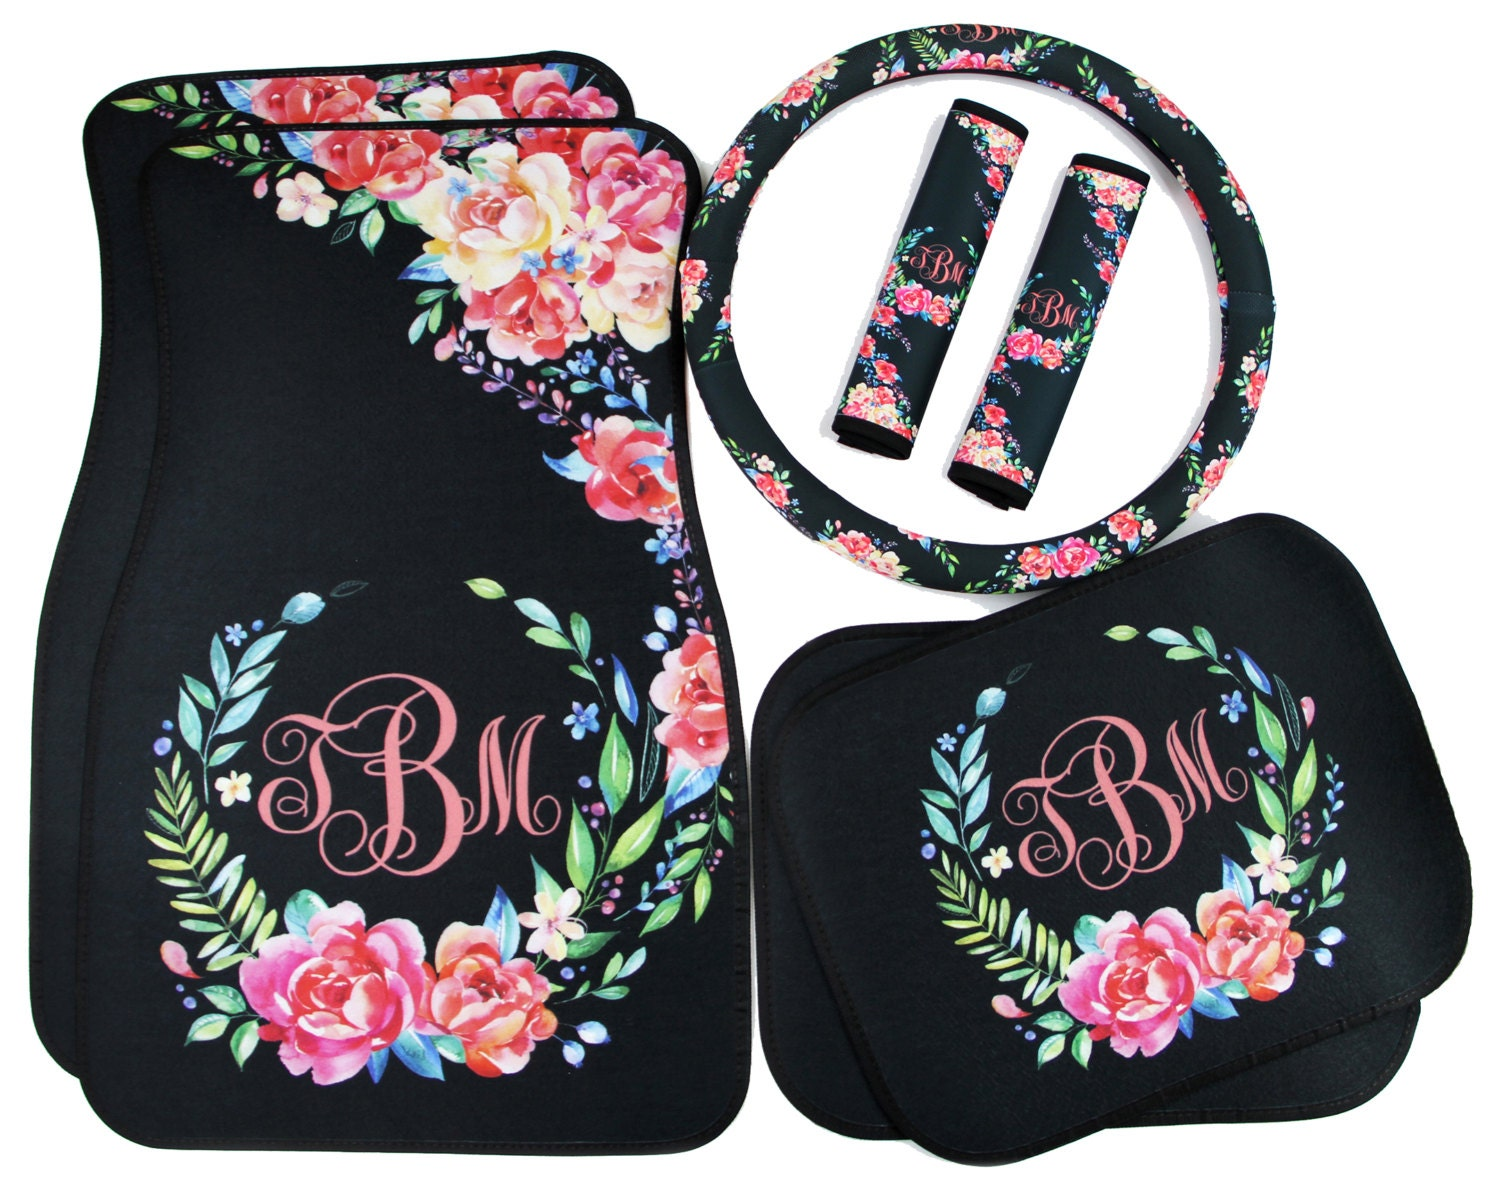 classy black floral car accessories car mats floor mats. Black Bedroom Furniture Sets. Home Design Ideas